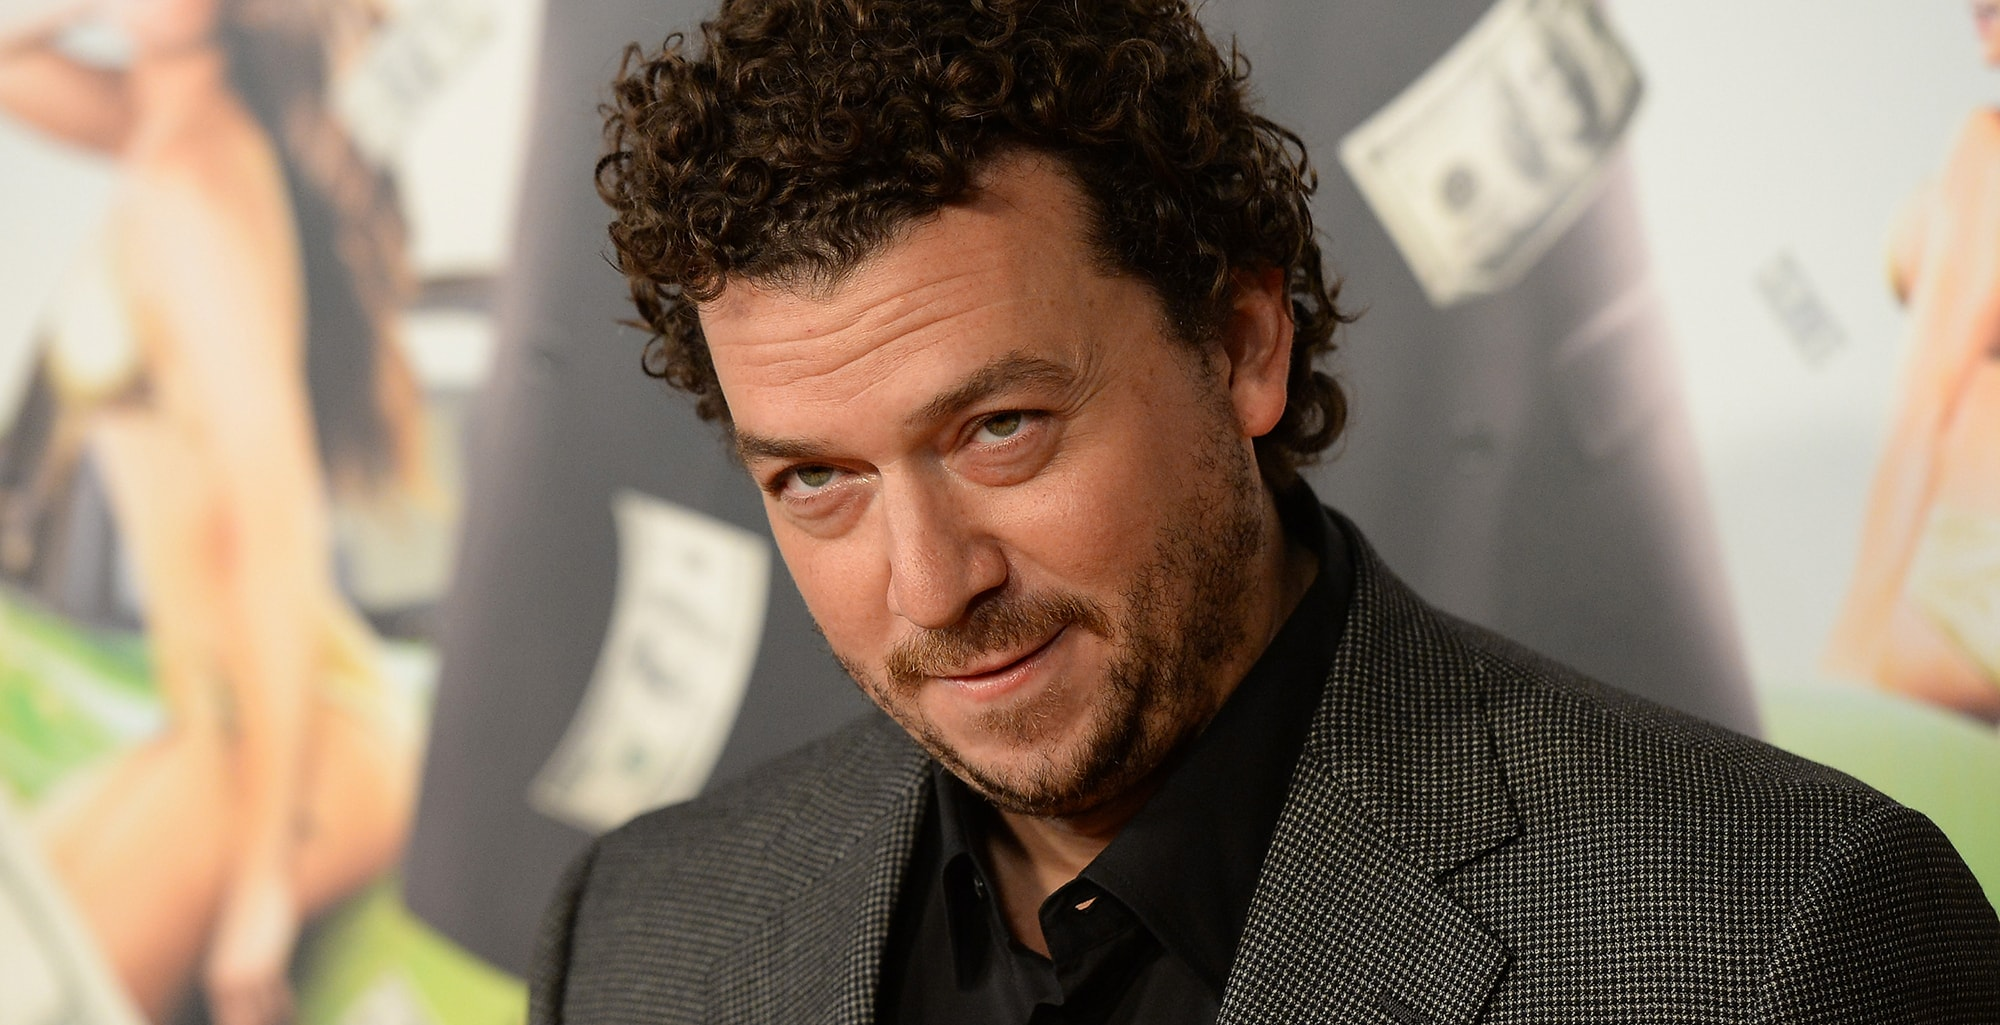 Danny Mcbride Wallpaper